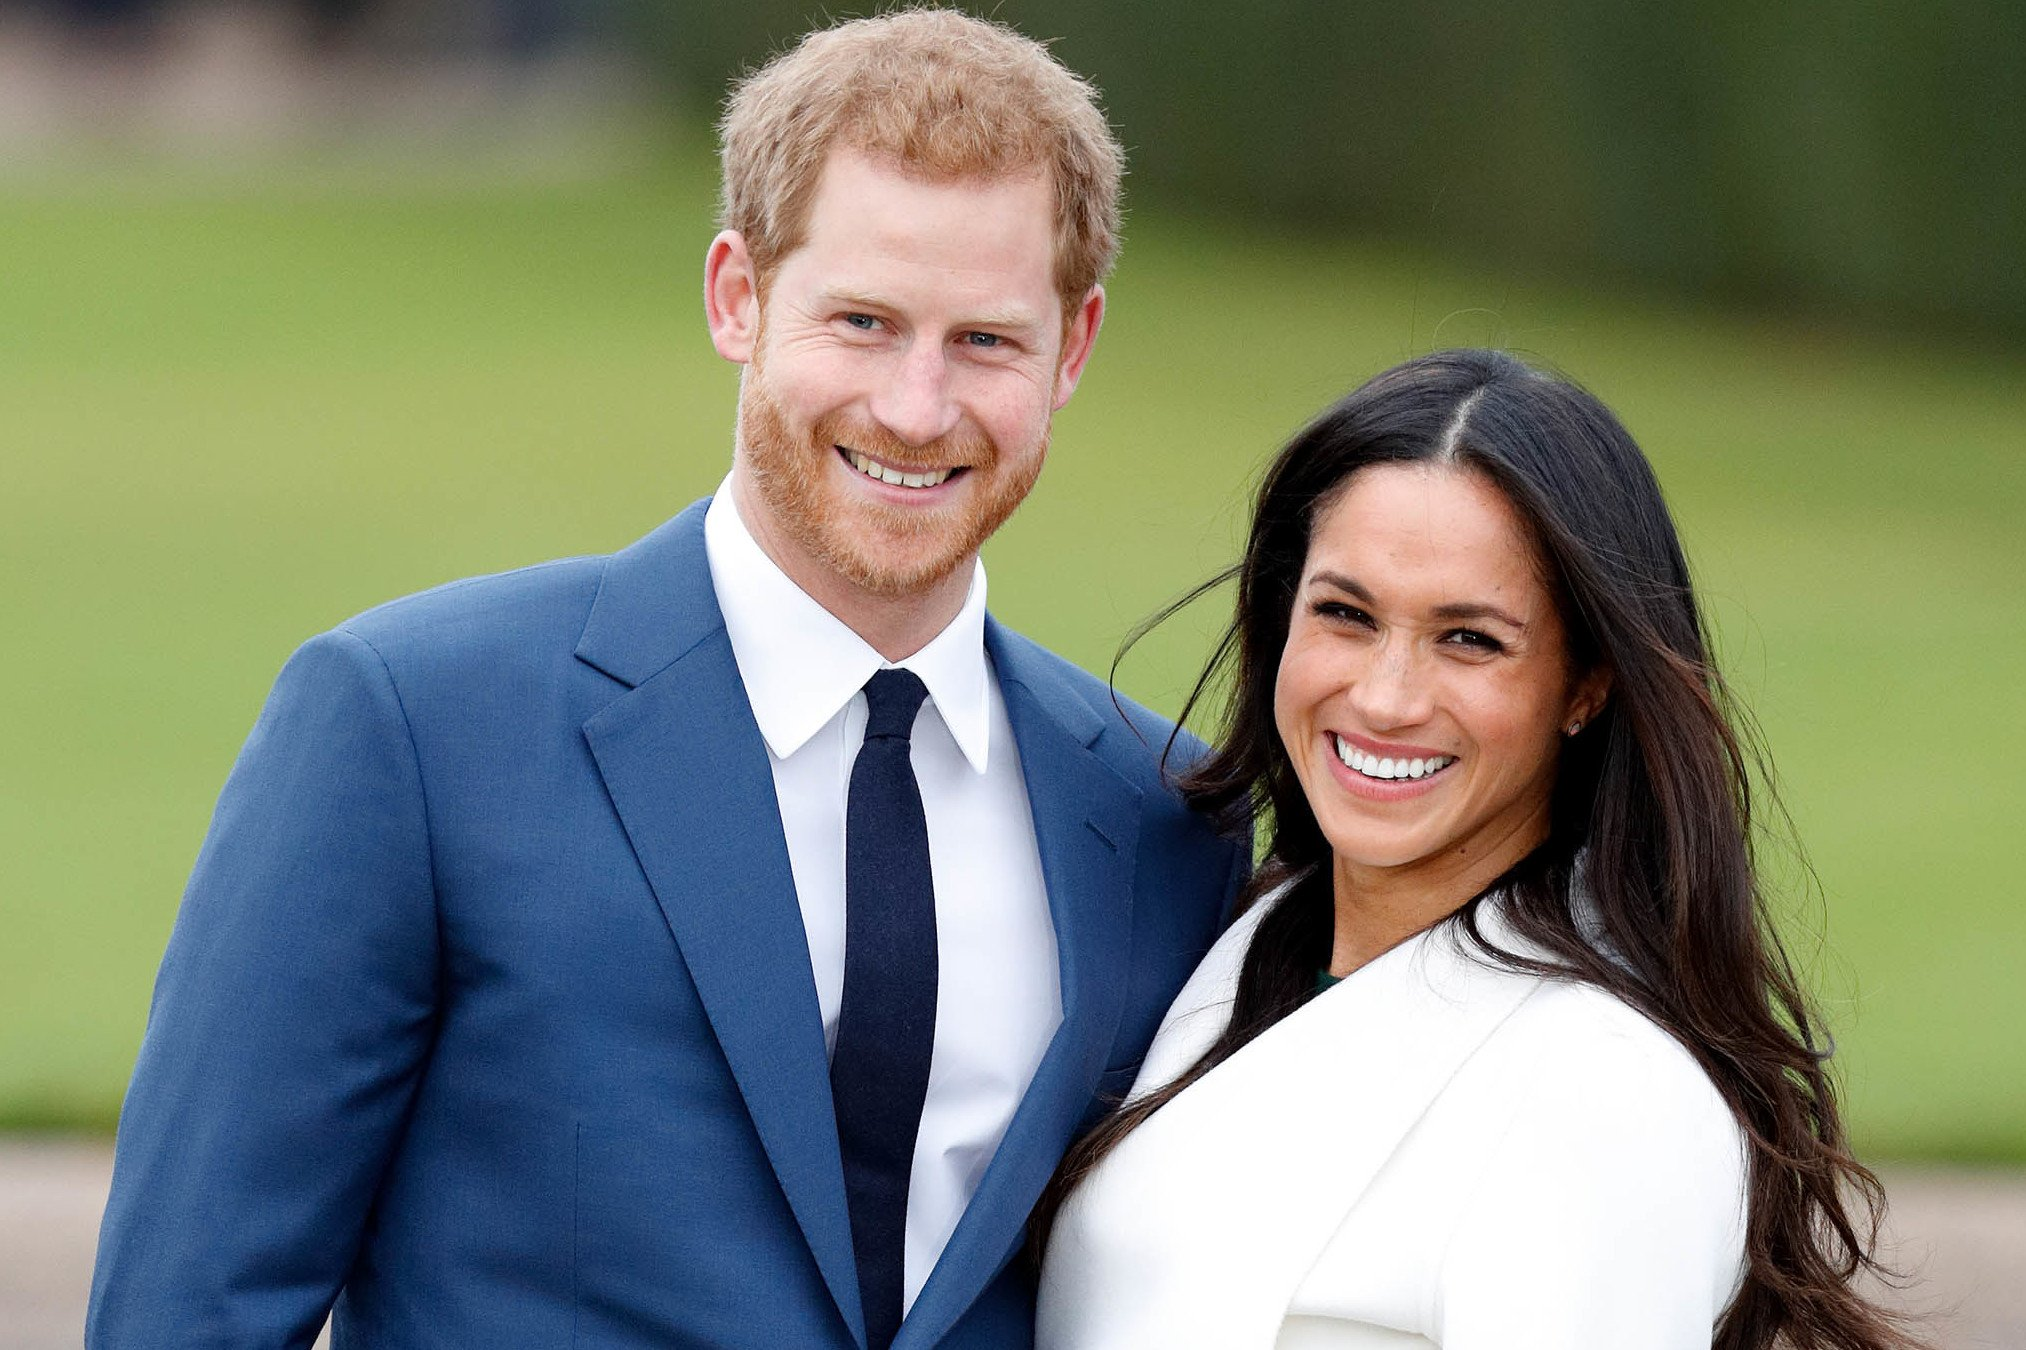 The police are afraid of snipers at the wedding of Prince Harry